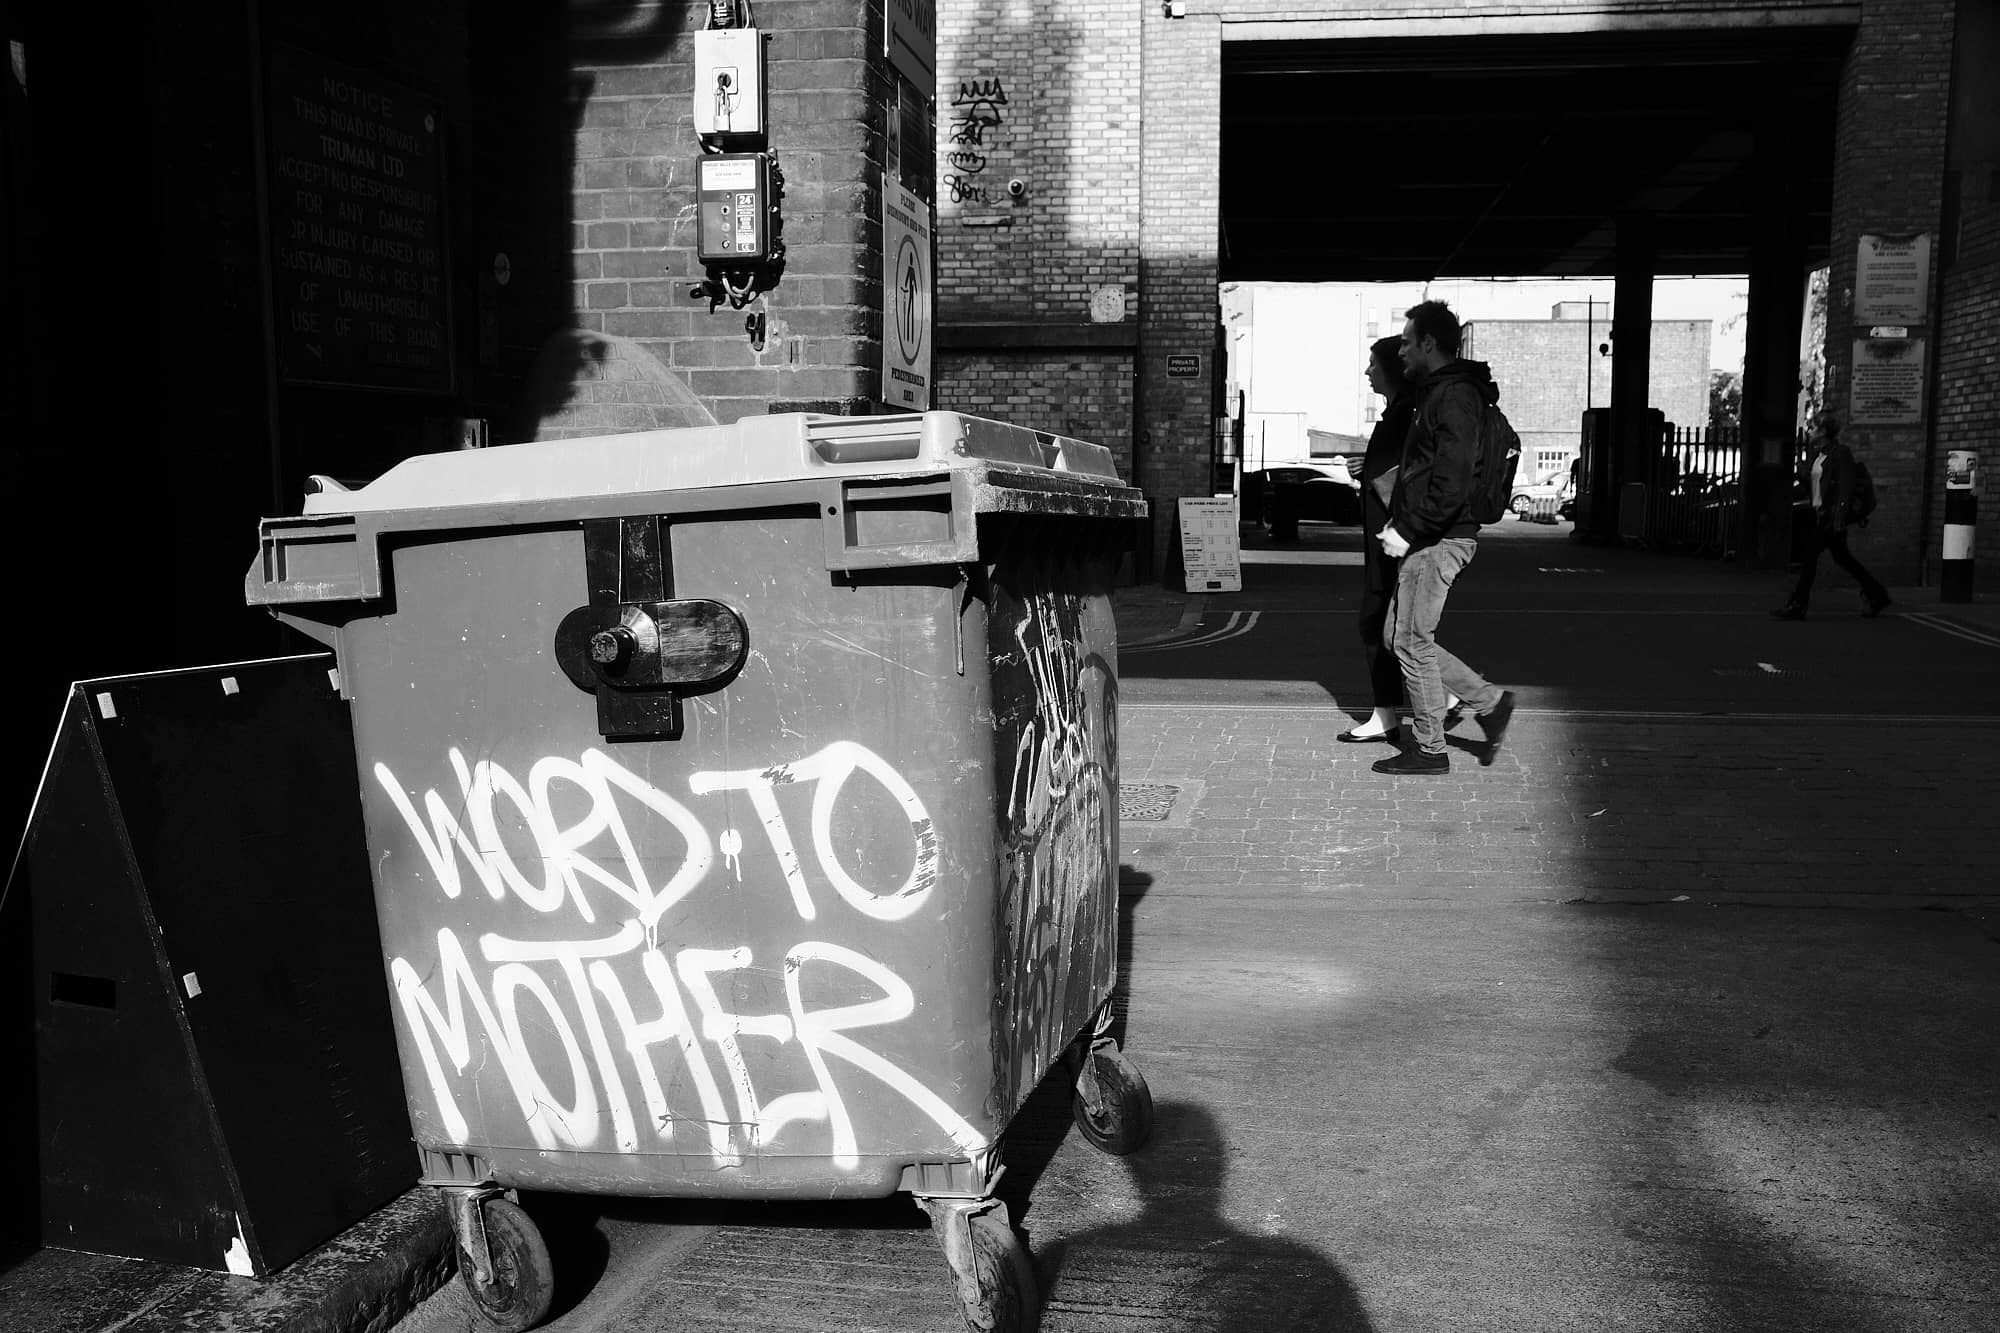 bin with 'Word To Mother' sprayed on it